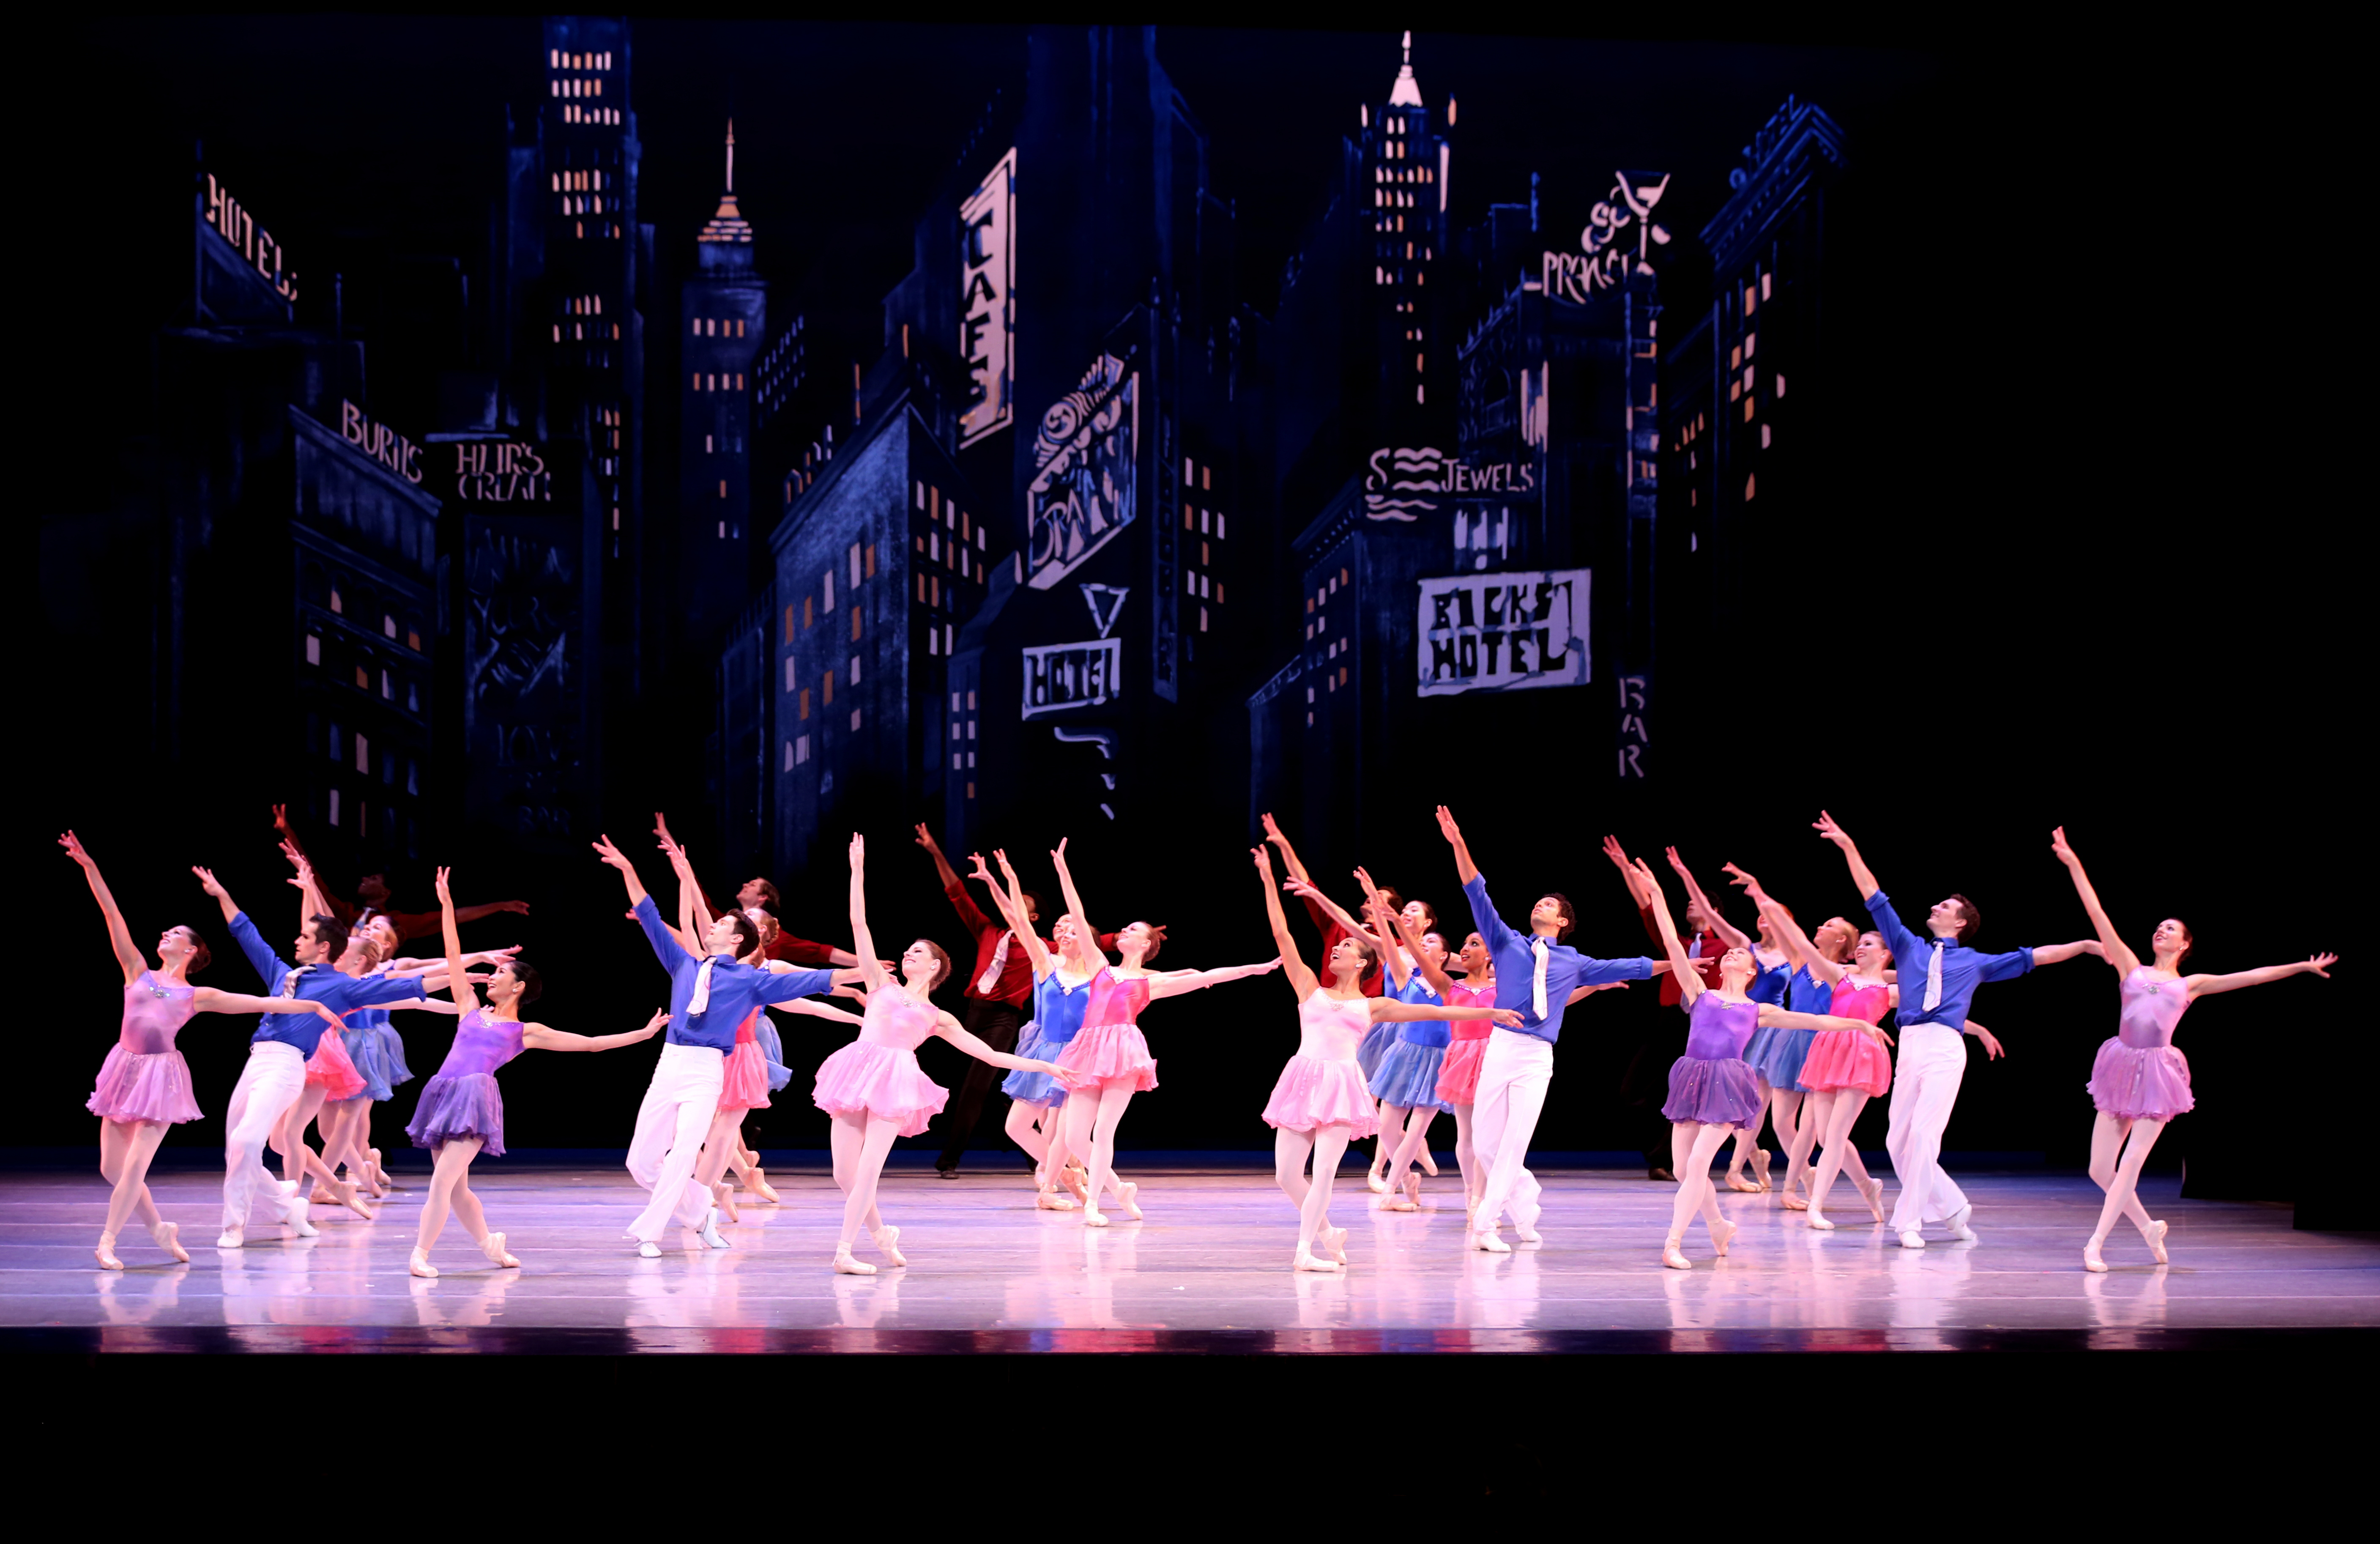 Richmond Ballet dancers on stage